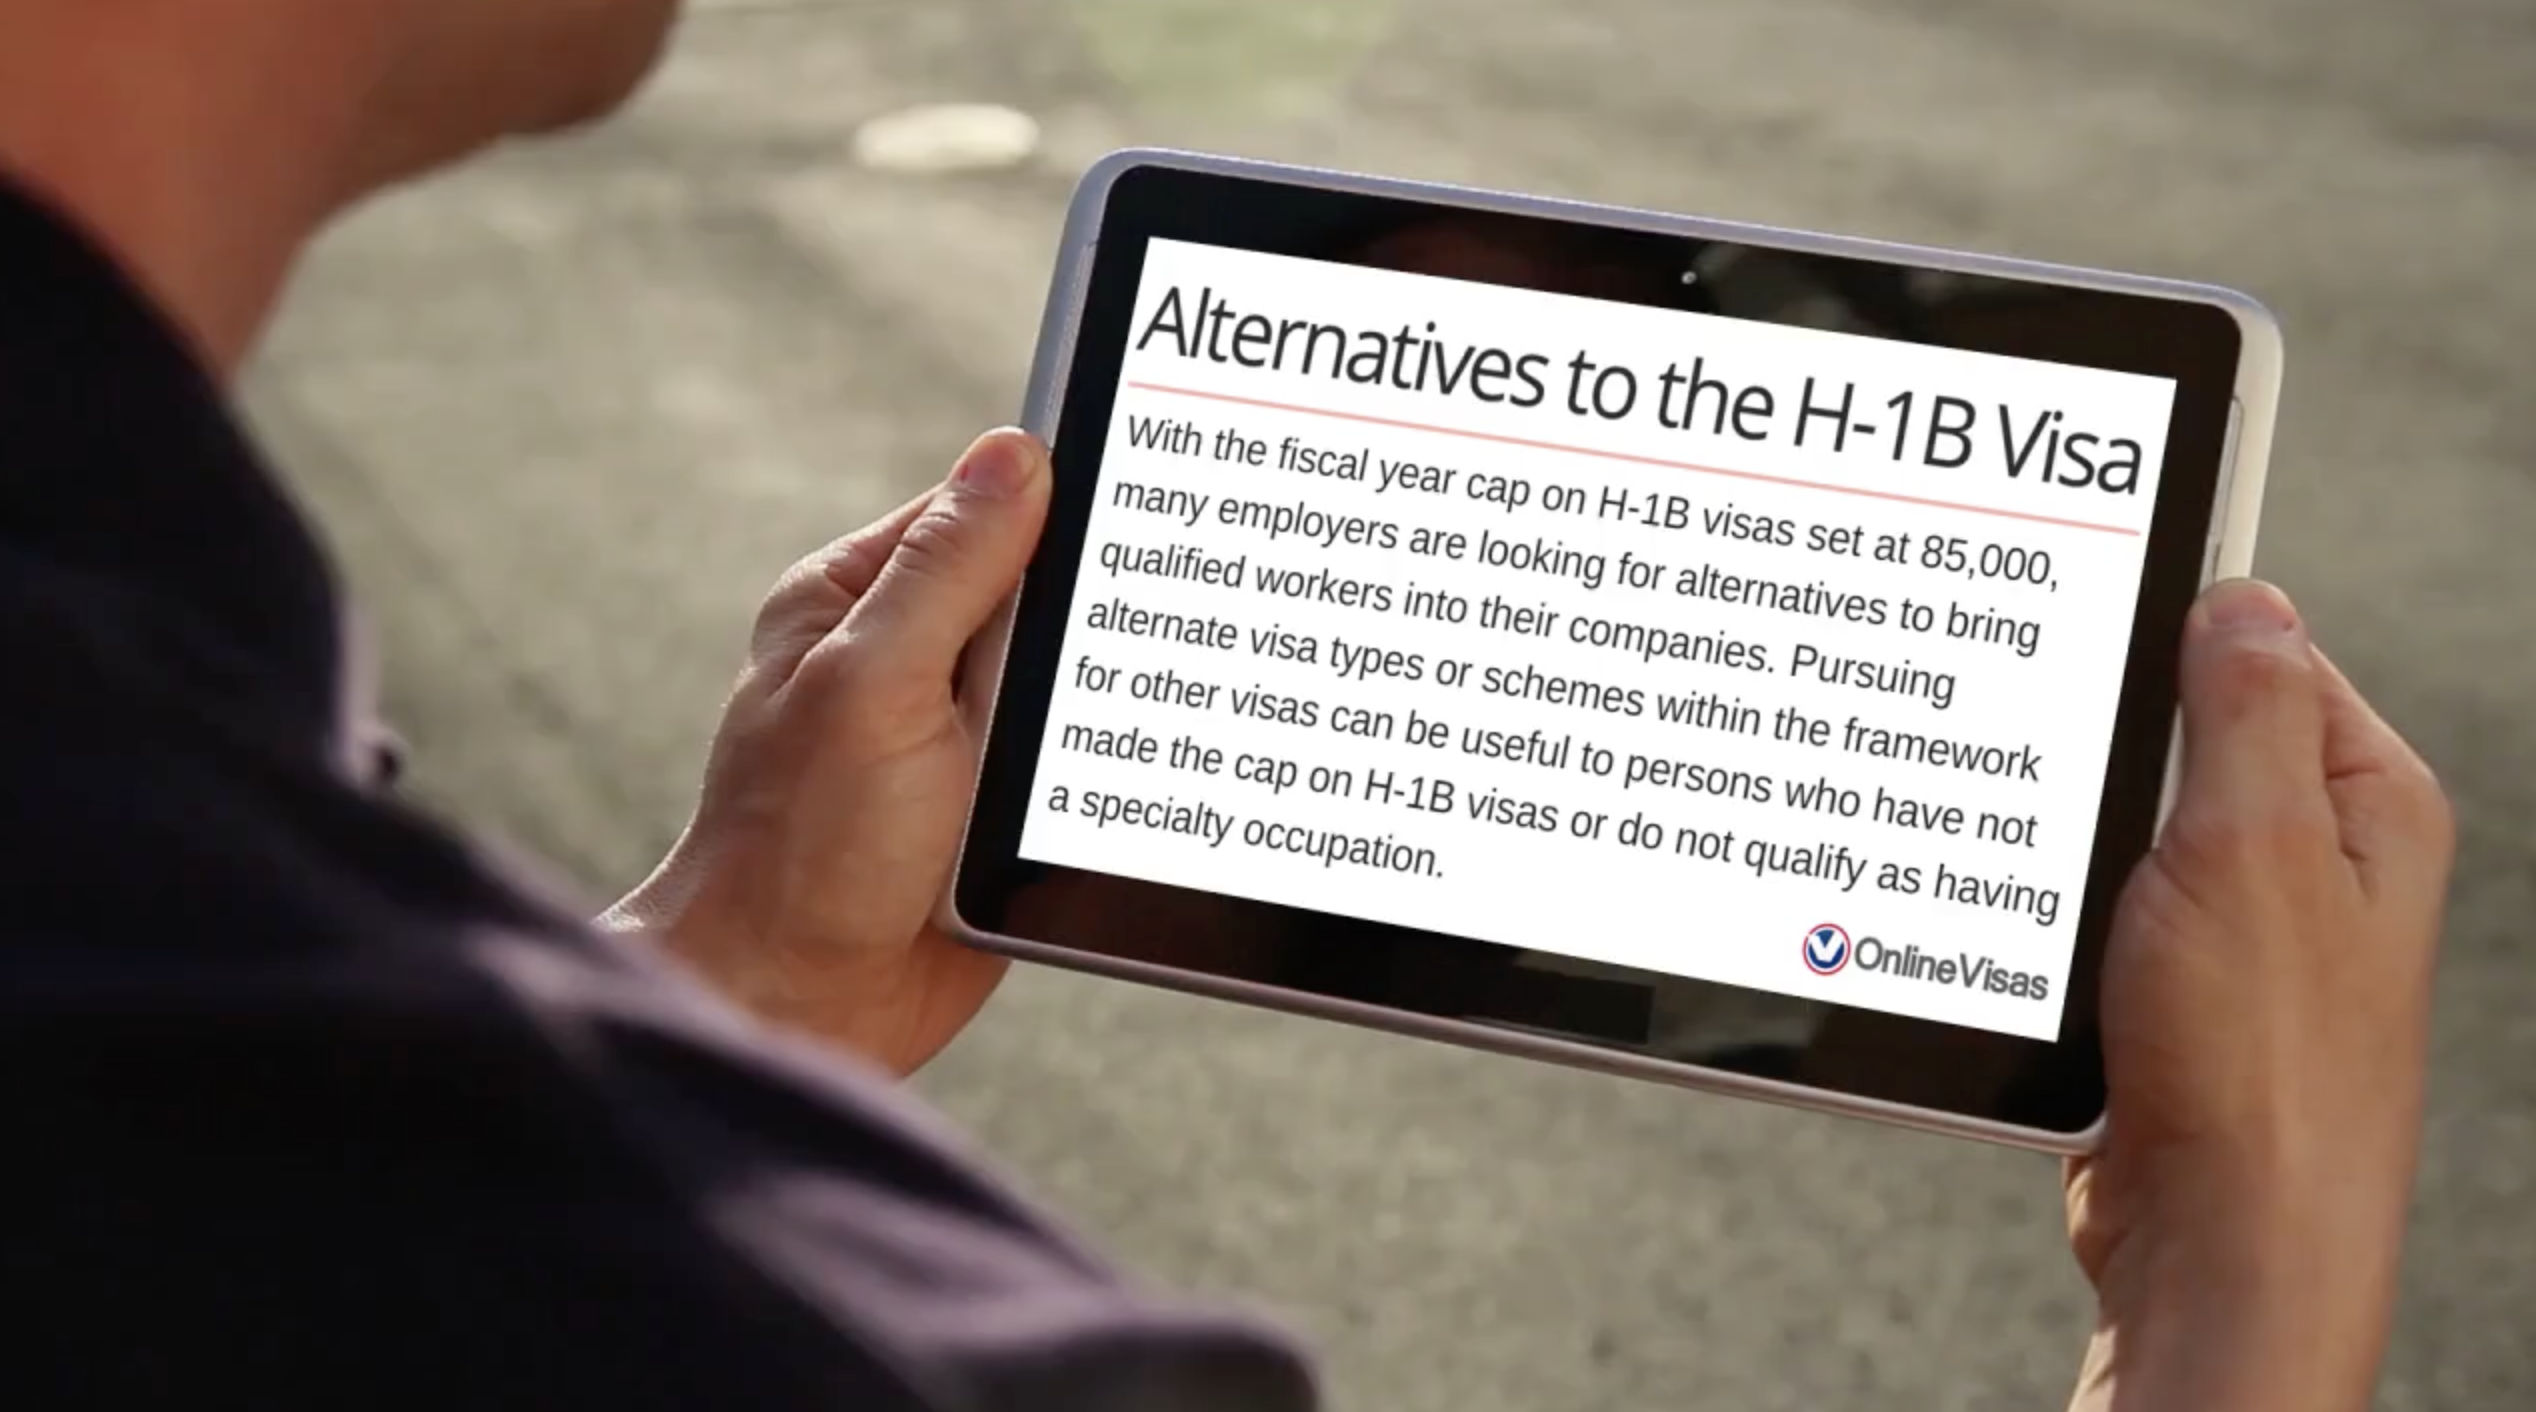 What if your specialty occupation on H1B petition is not related to